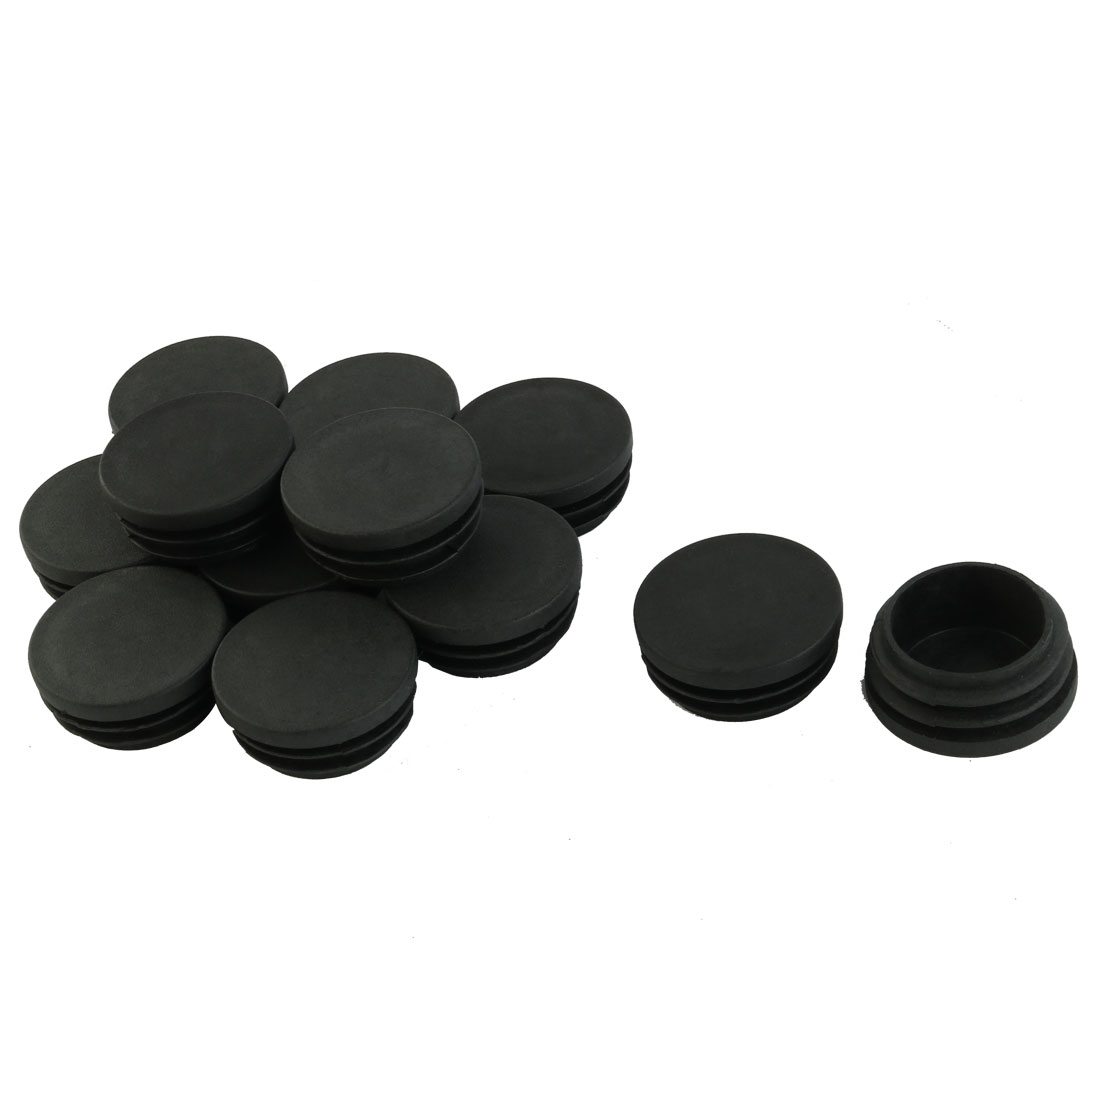 12 Pcs Black Plastic 40mm Dia Round Tubing Tube Insert Caps Covers